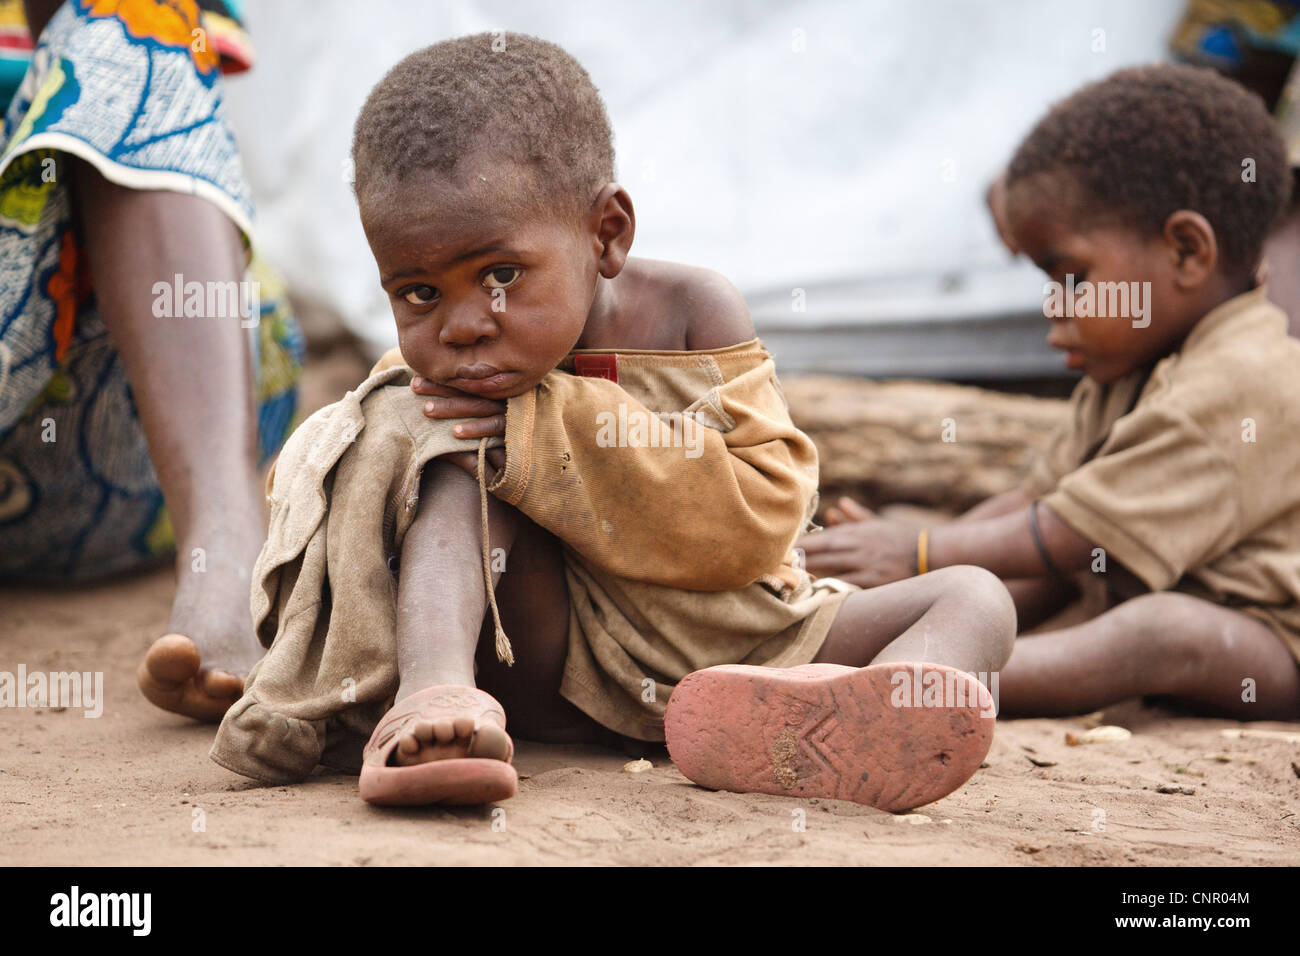 A child sits on the ground at the Miketo IDP settlement, Katanga province, Democratic Republic of Congo - Stock Image